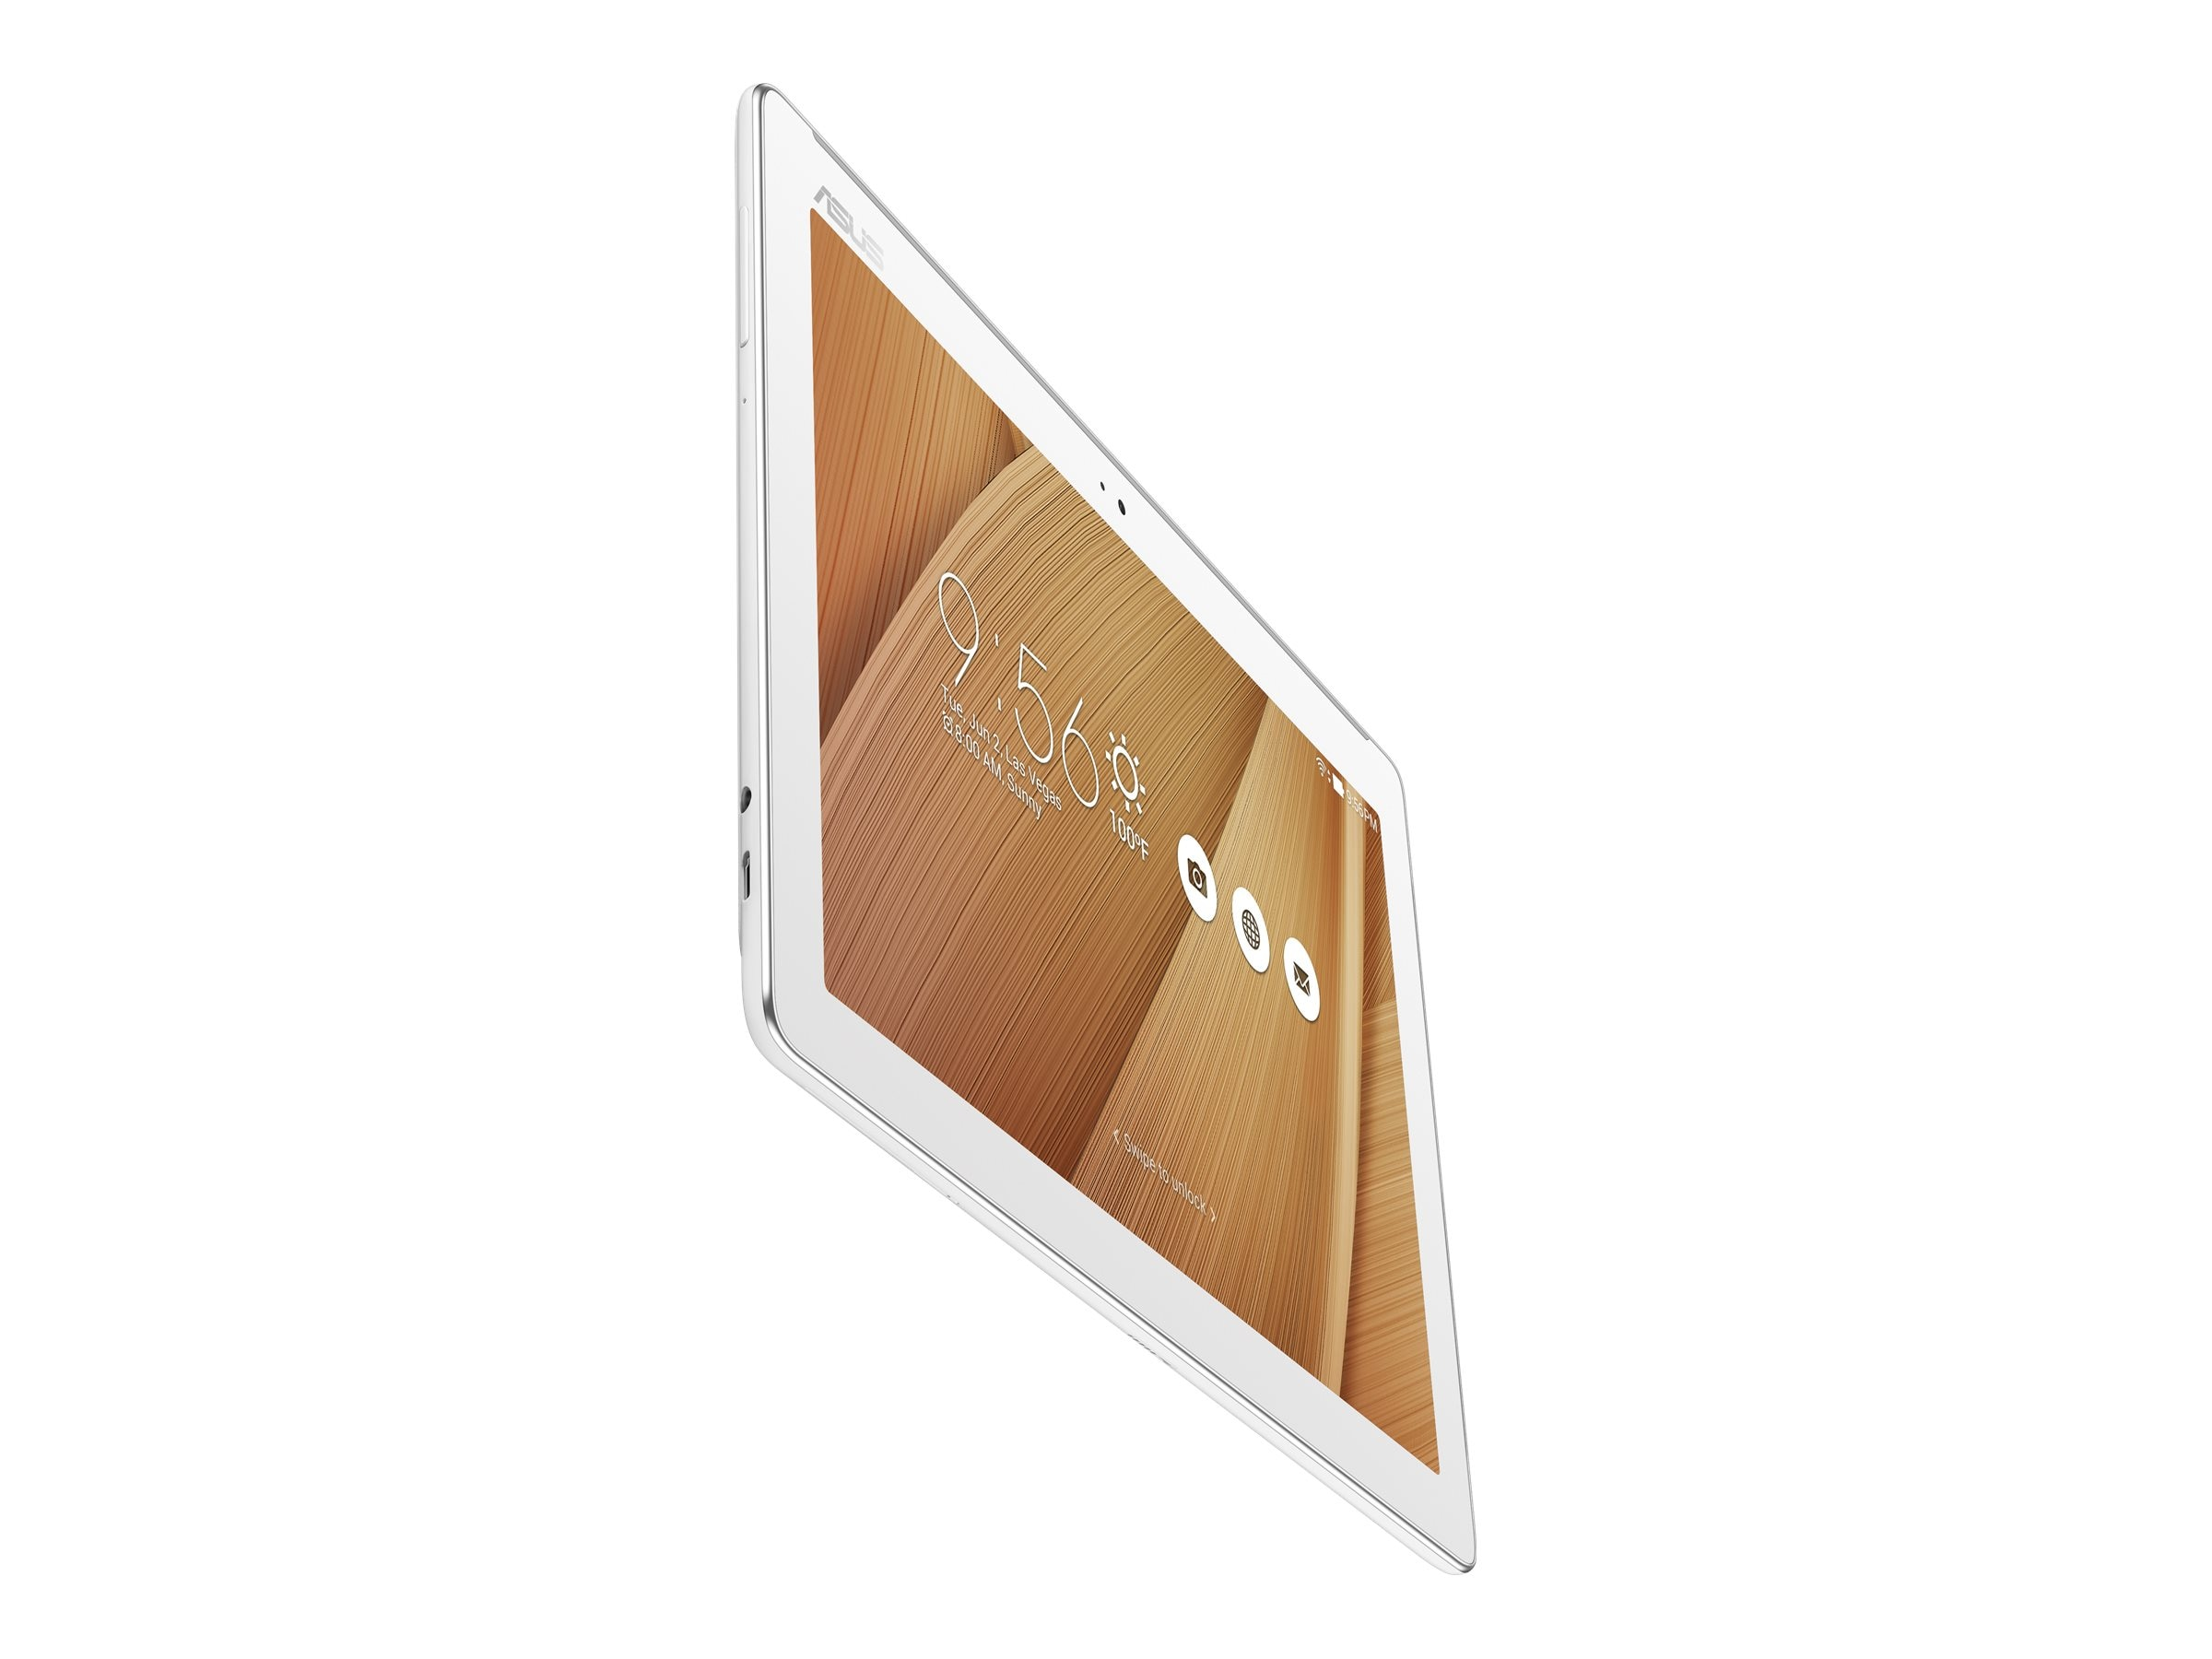 Asus ZenPad Z300M-A2-GD MTK 8163 2GB 16GB 2xWC 10 WSVGA MT Android 6.0, Z300M-A2-GD